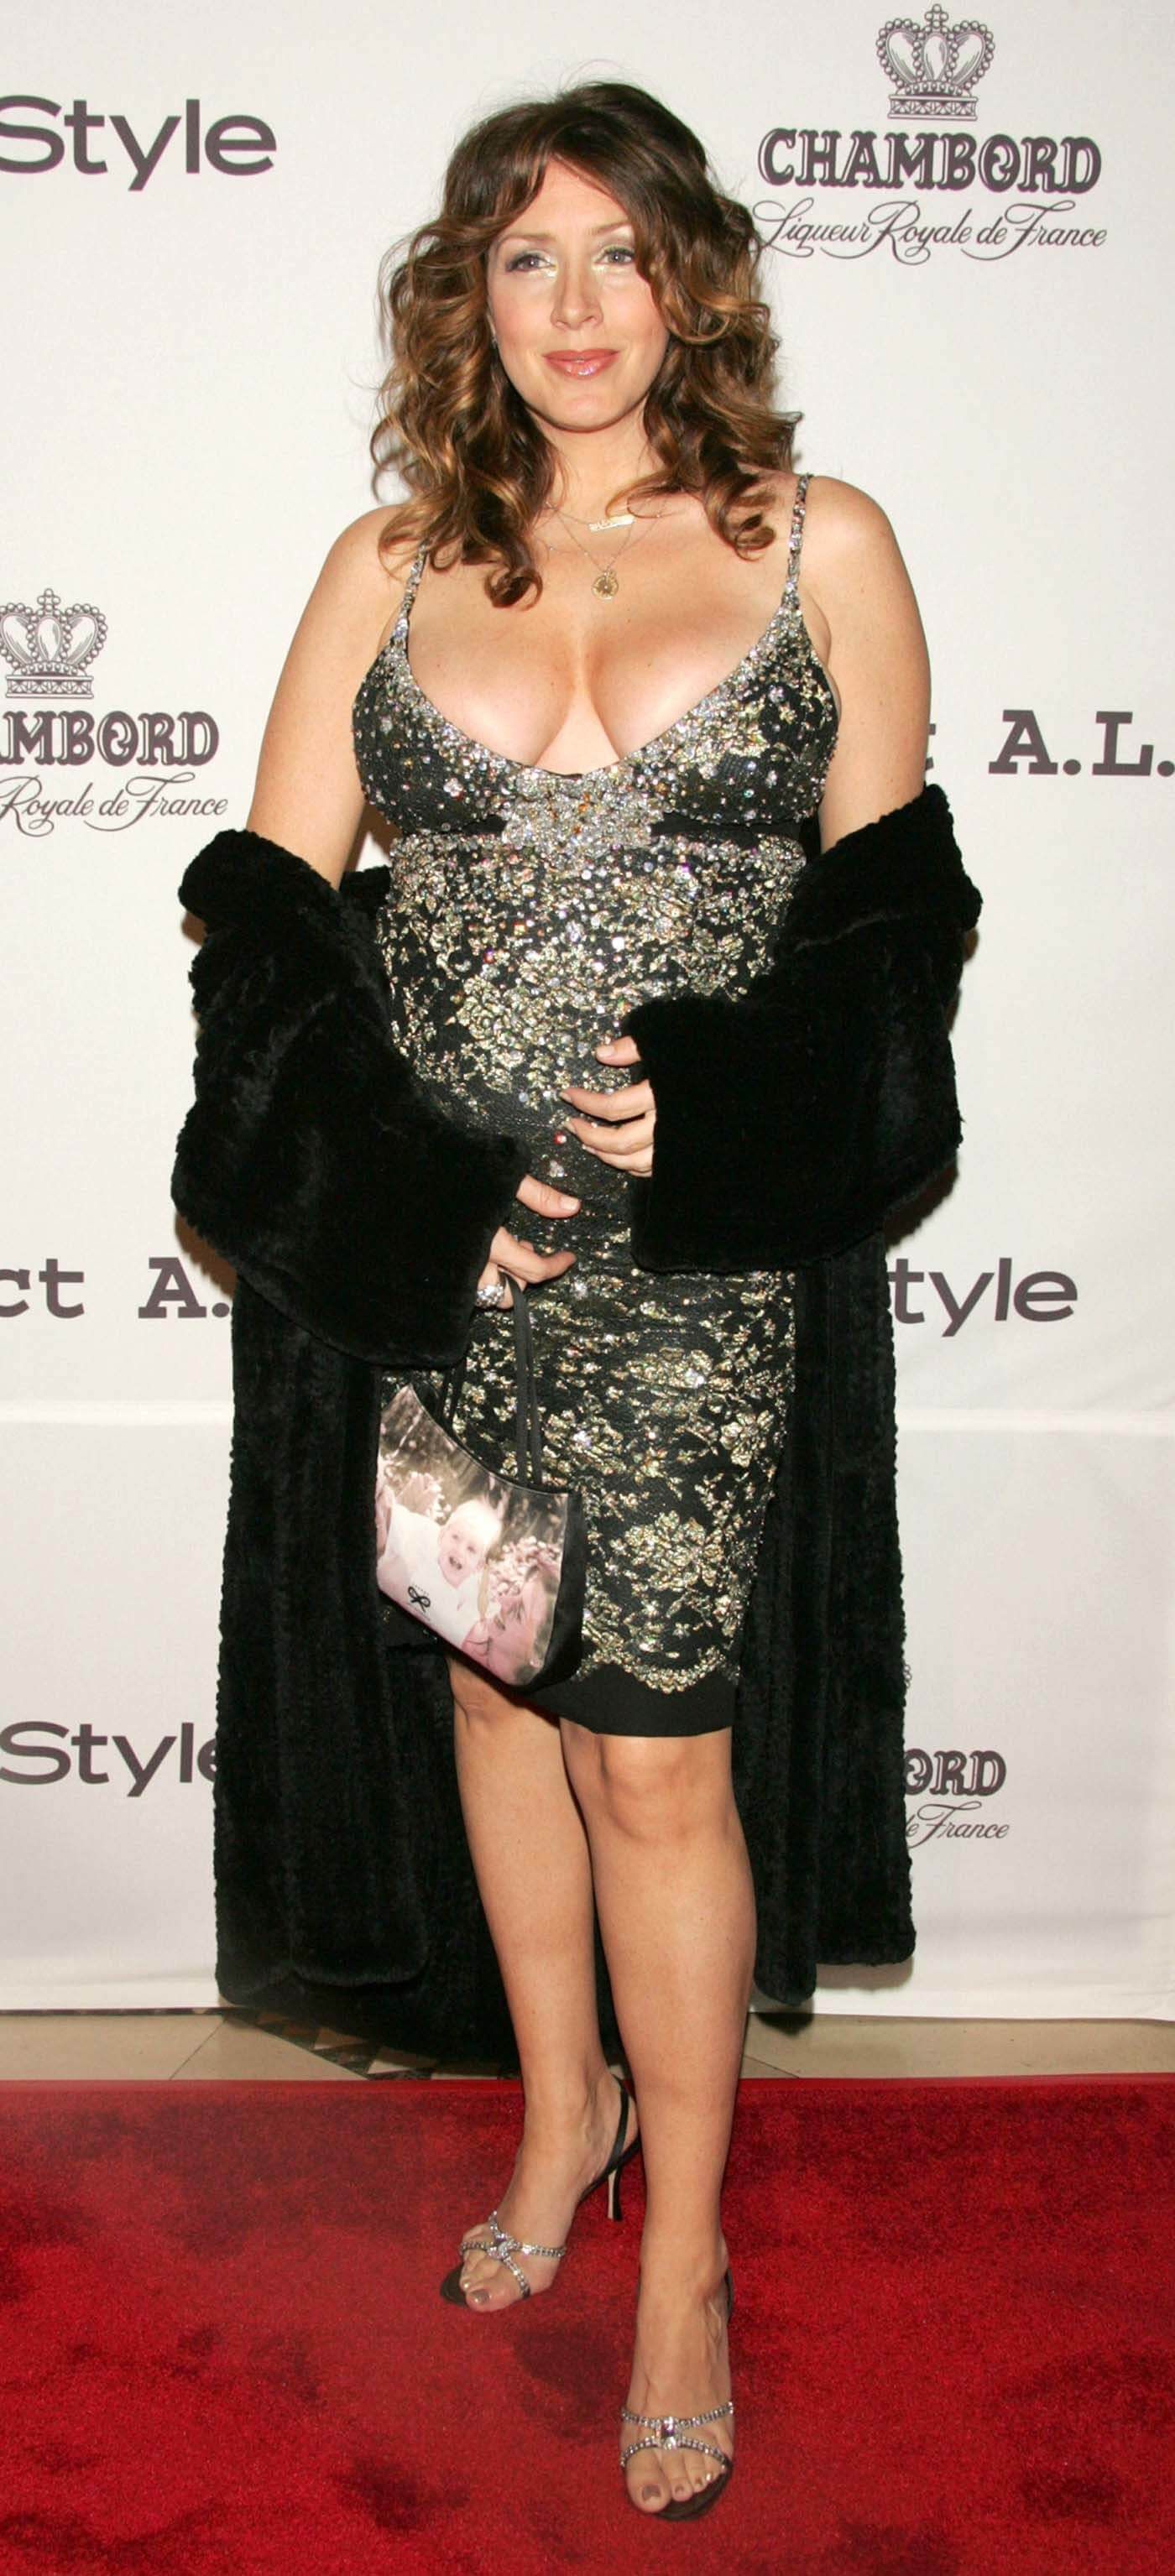 49 hot photos of Joely Fisher - a real work of art